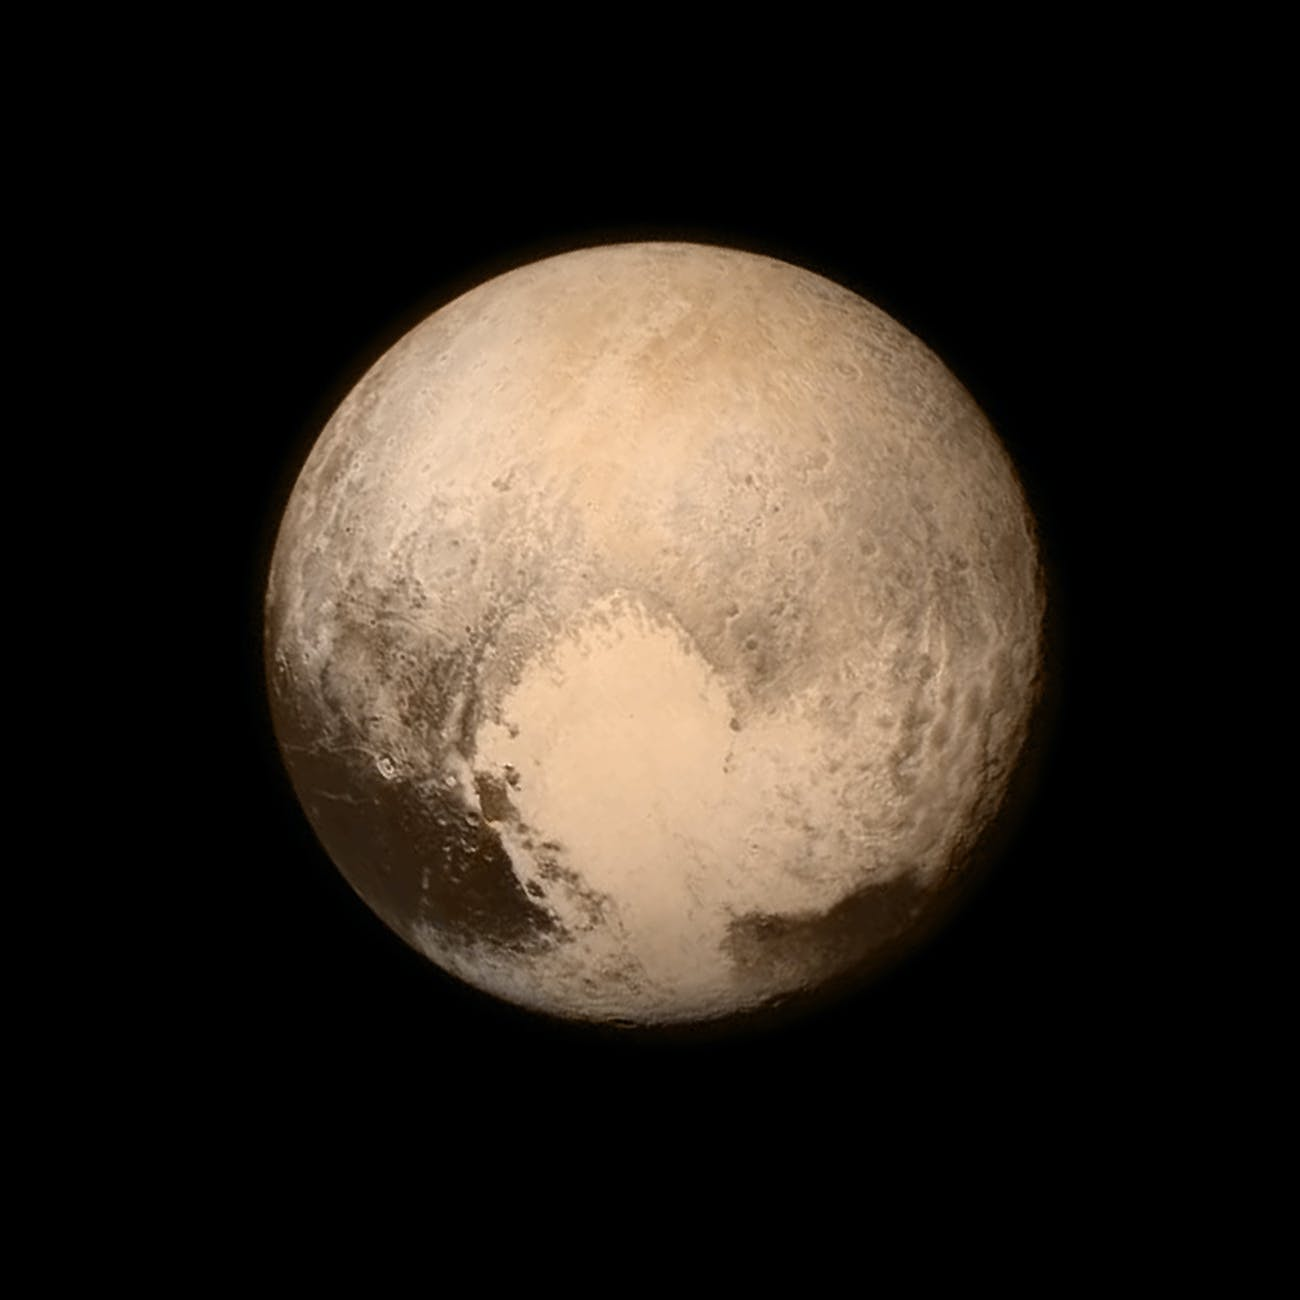 Pluto - as seen by New Horizons